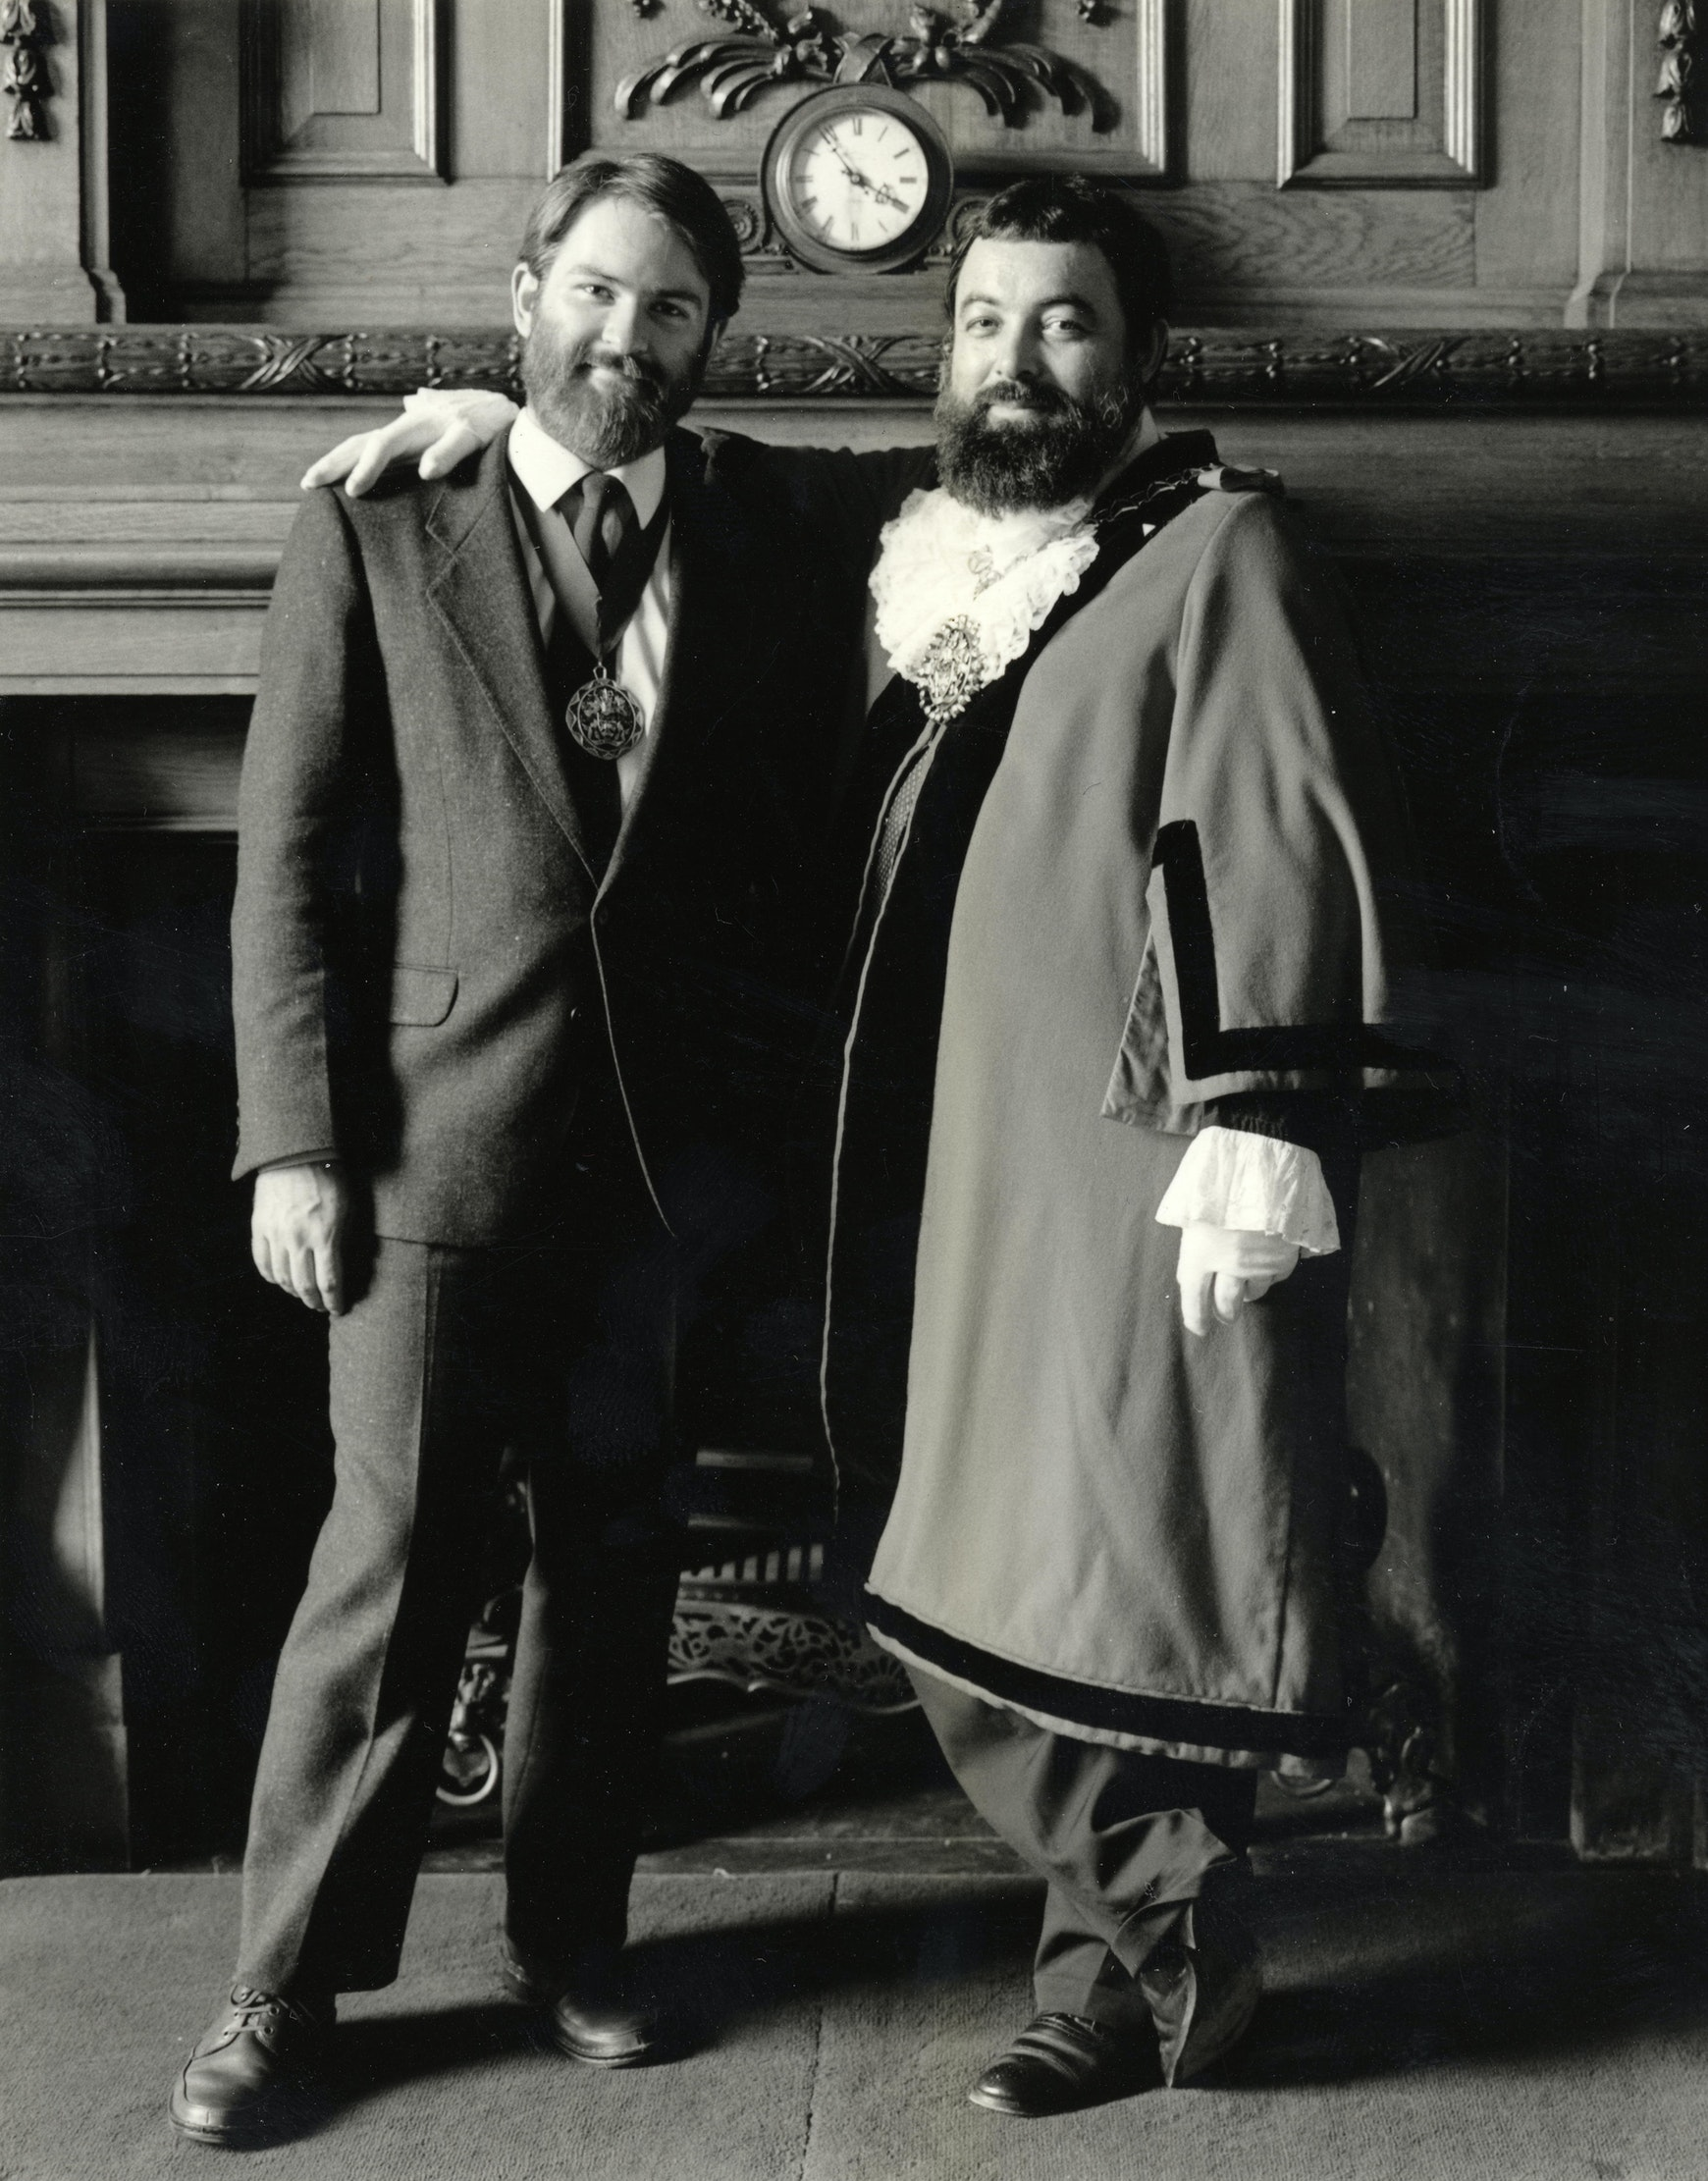 """Bob Crossman (right) pictured with his """"consort"""" Martin McCloghry"""